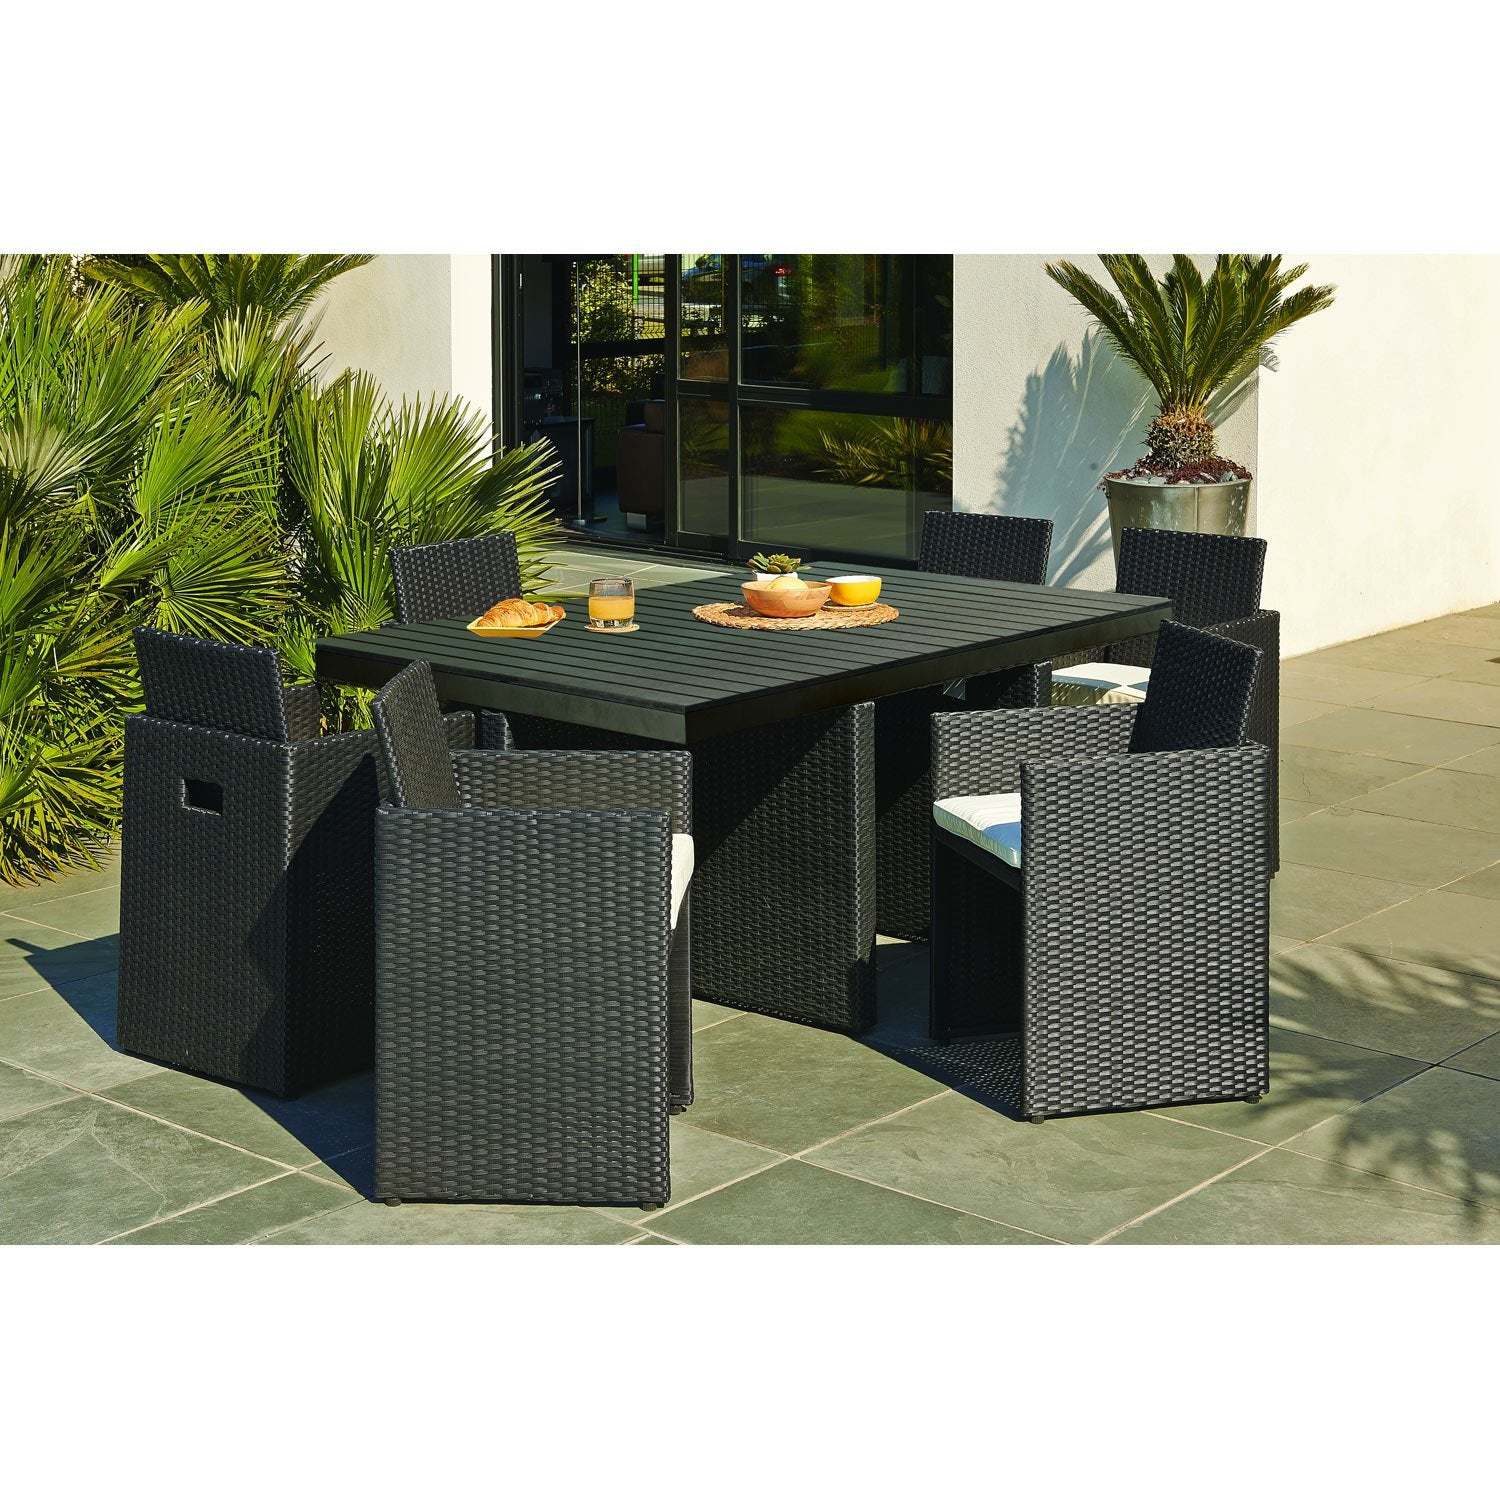 Salon de jardin encastrable r sine tress e noir 1 table for Ocultacion jardin leroy merlin